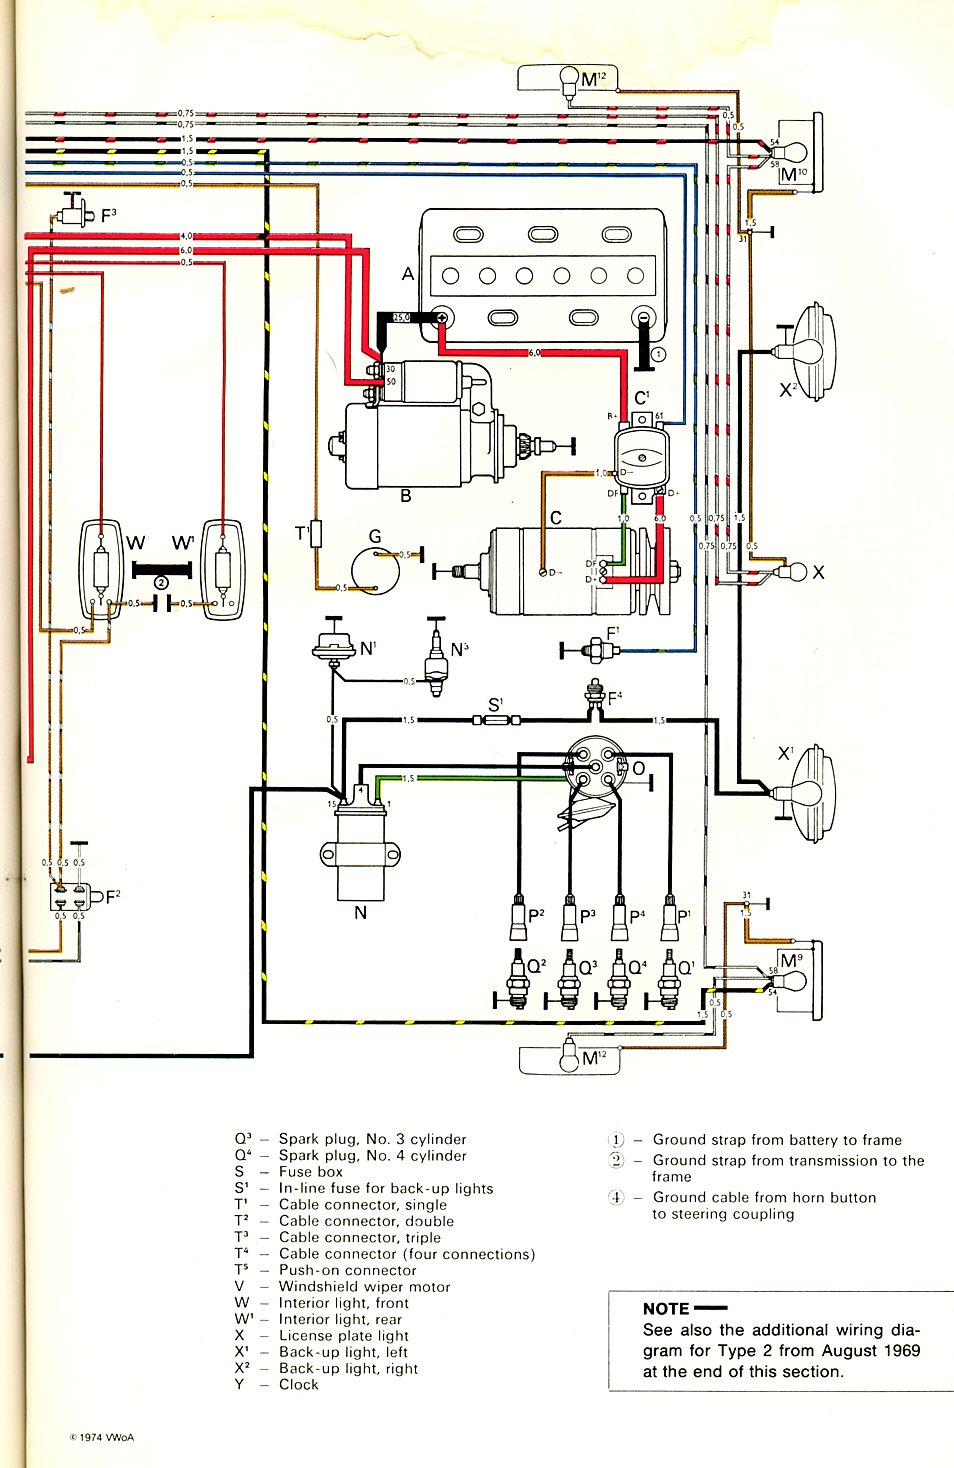 thesamba.com :: type 2 wiring diagrams kazuma 70 redcat wiring diagram 70 vw wiring diagram